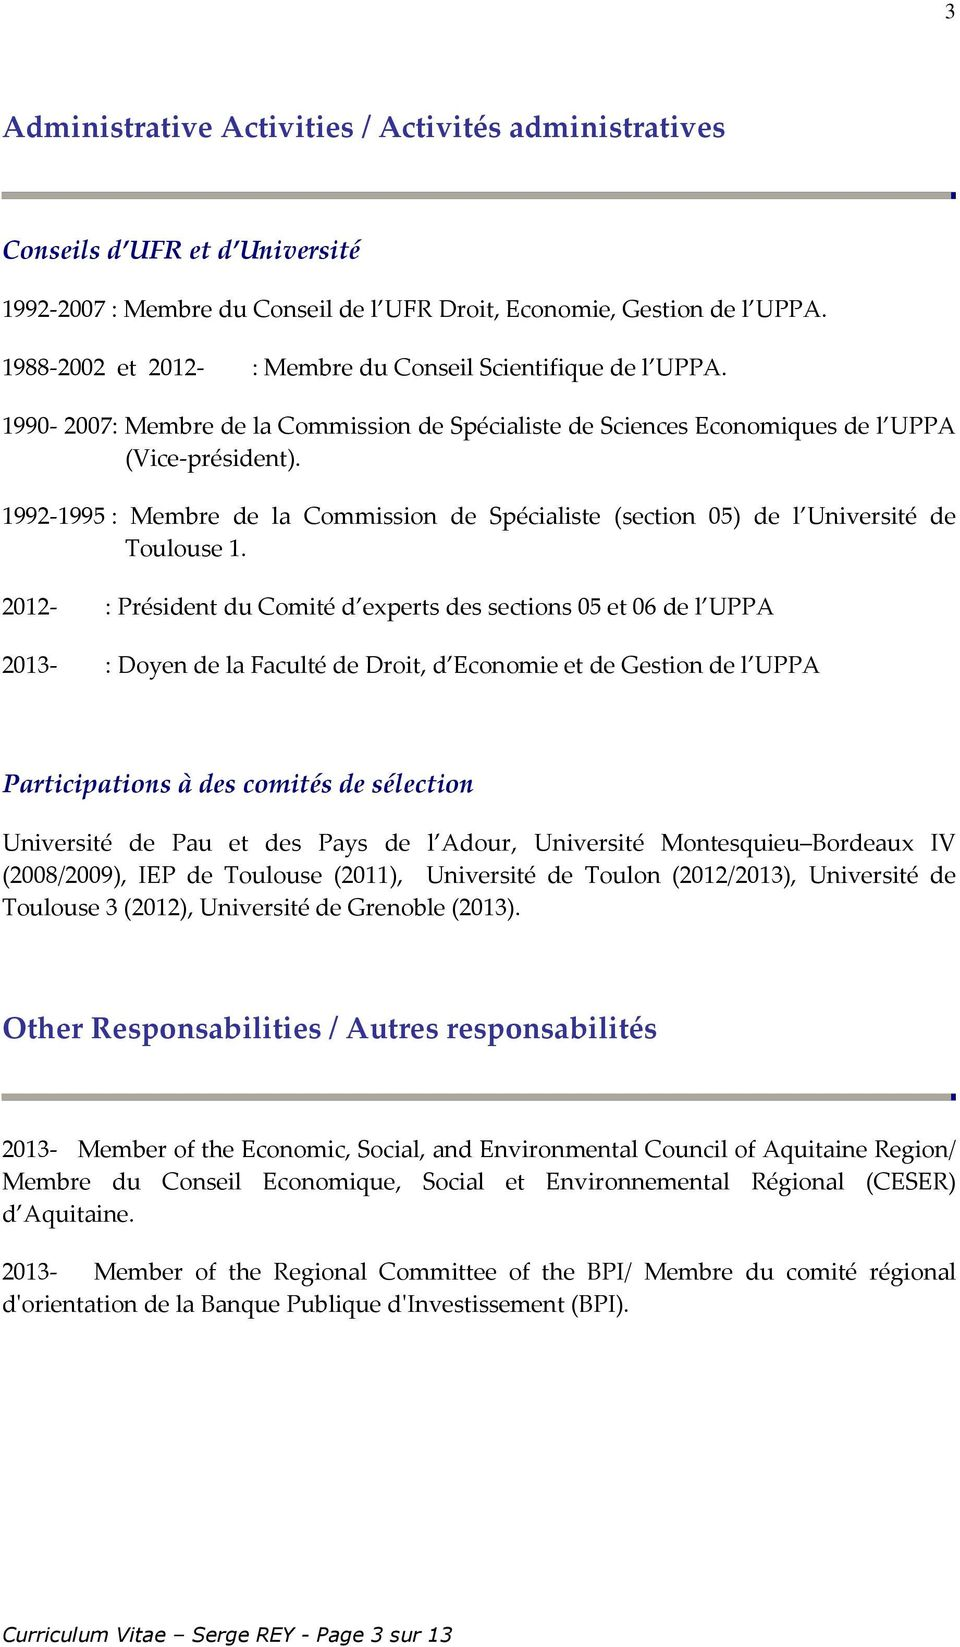 1992-1995 : Membre de la Commission de Spécialiste (section 05) de l Université de Toulouse 1.